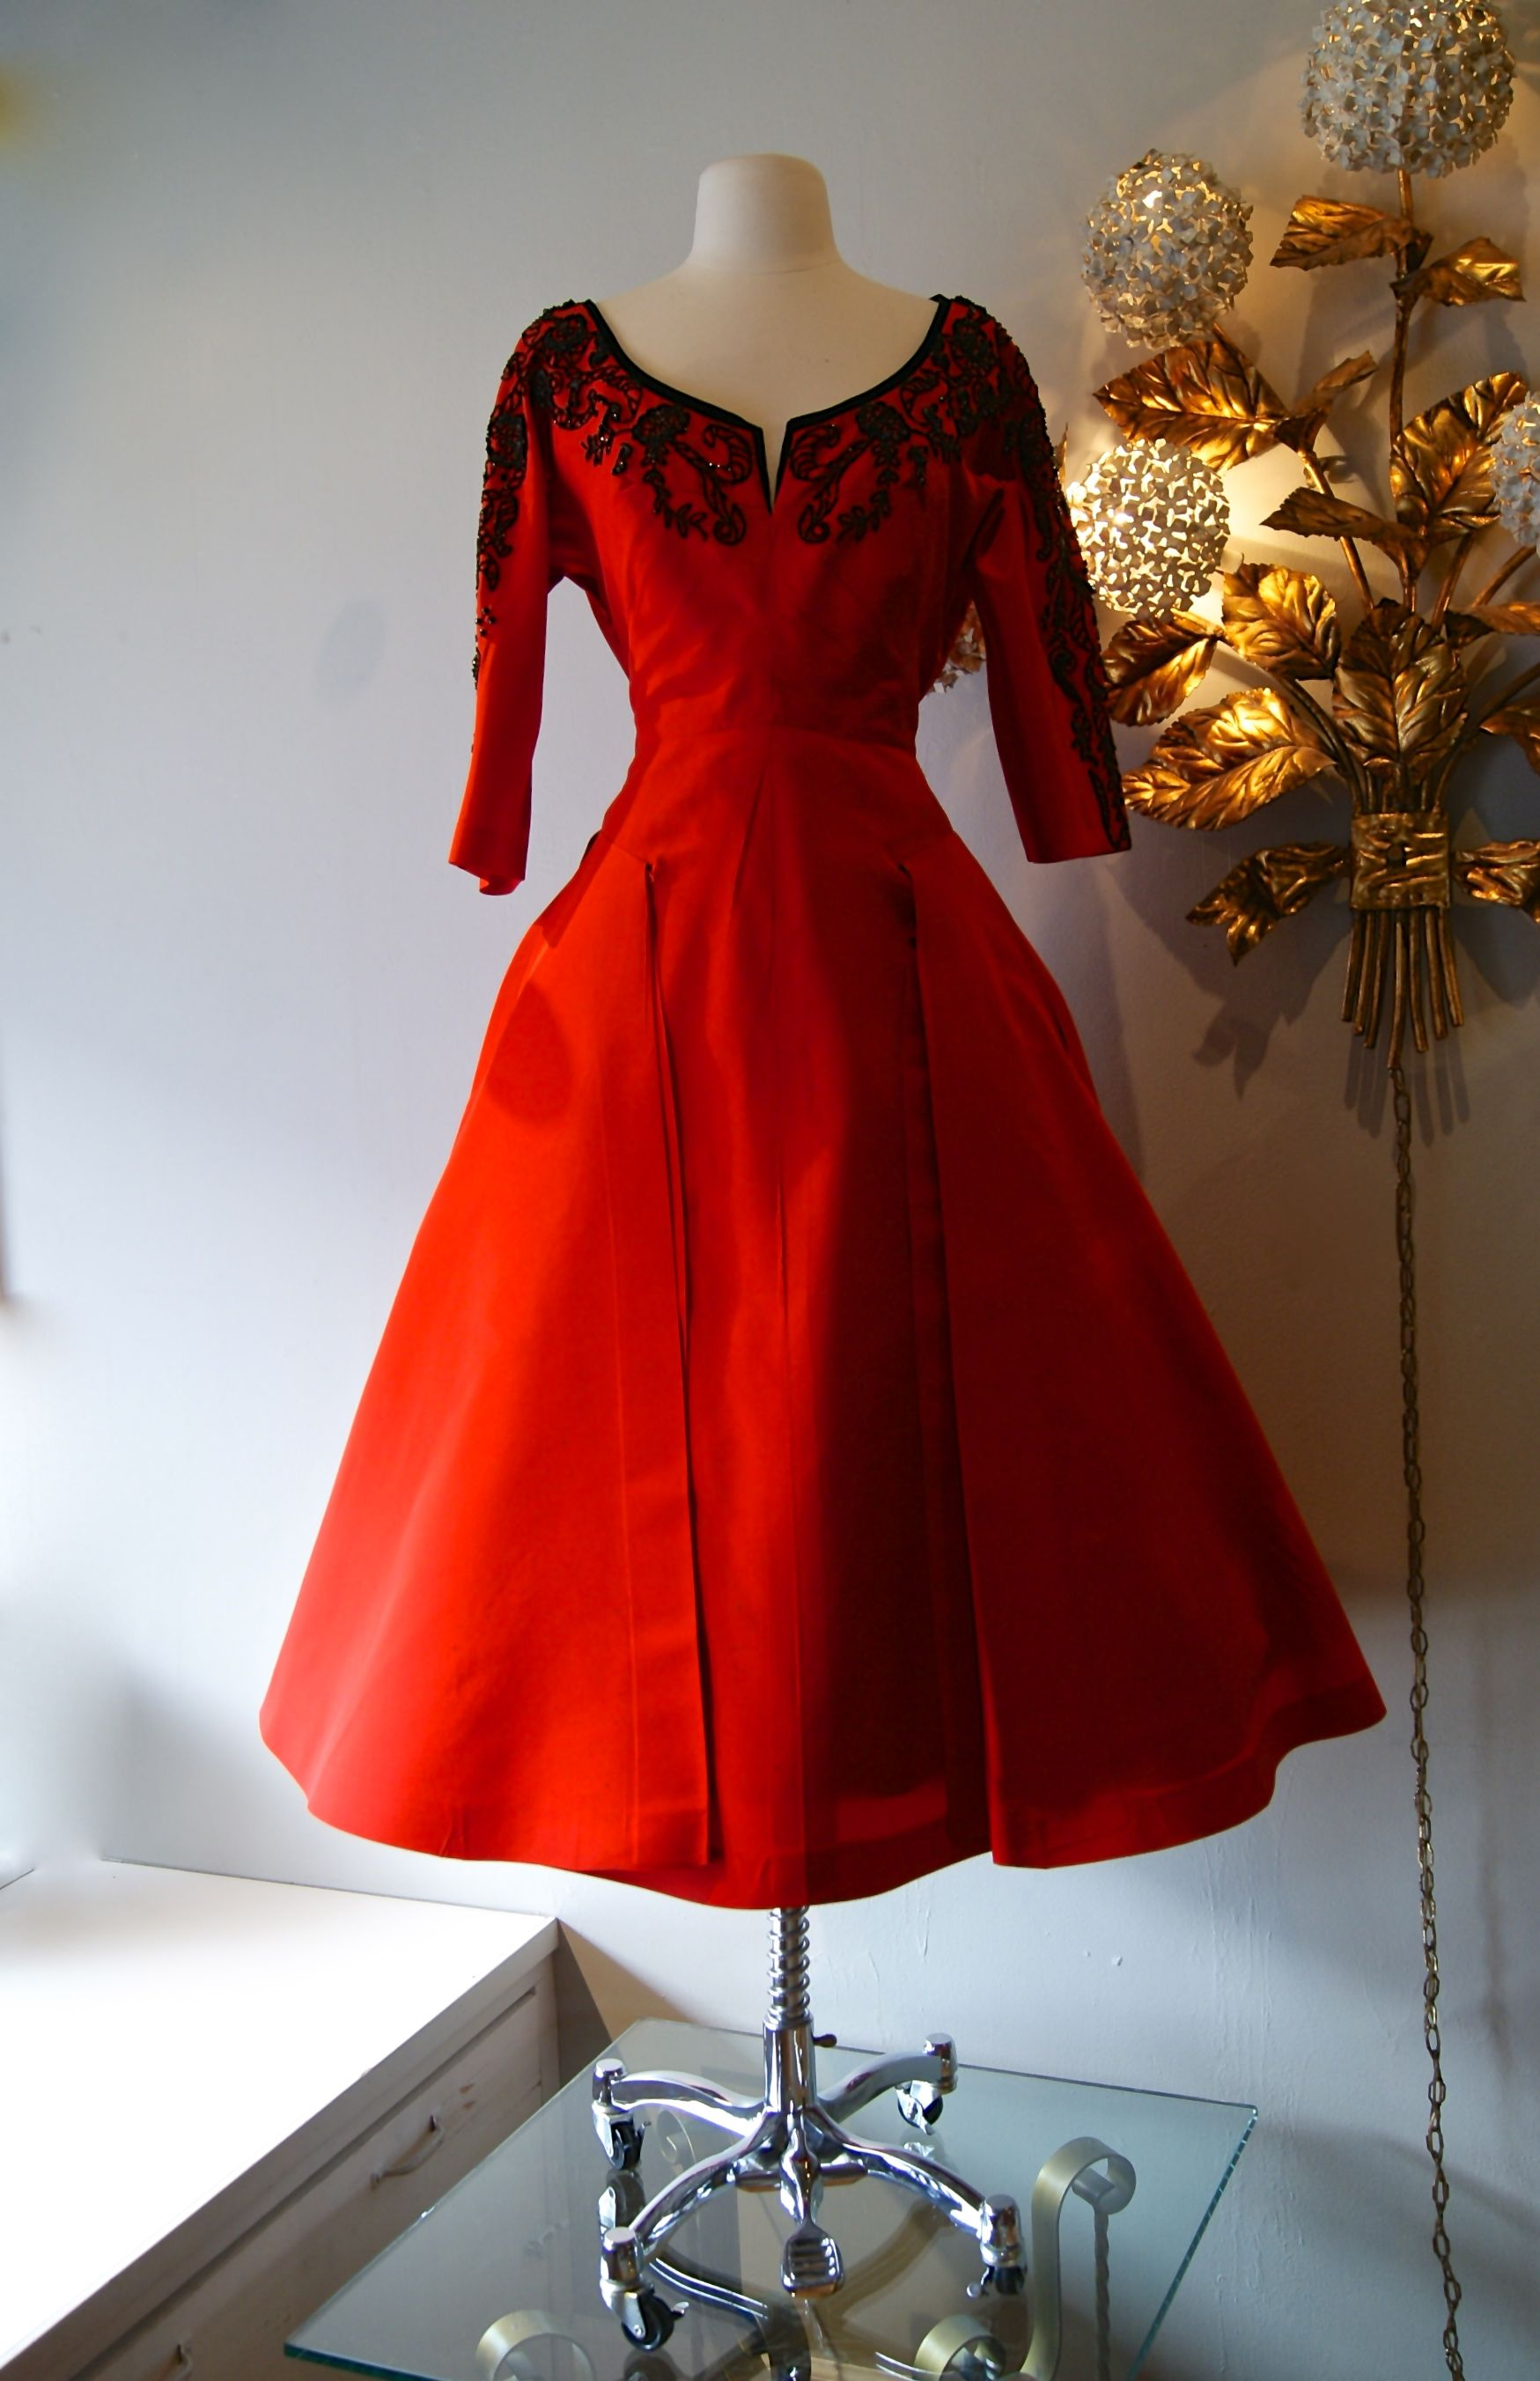 1950 S Ravishing Red Silk Faille Cocktail Dress A Sophie Original From Saks 5th Ave Dress Retro Party Vintage Dresses Vintage Fashion Retro Fashion Vintage [ 2704 x 1749 Pixel ]